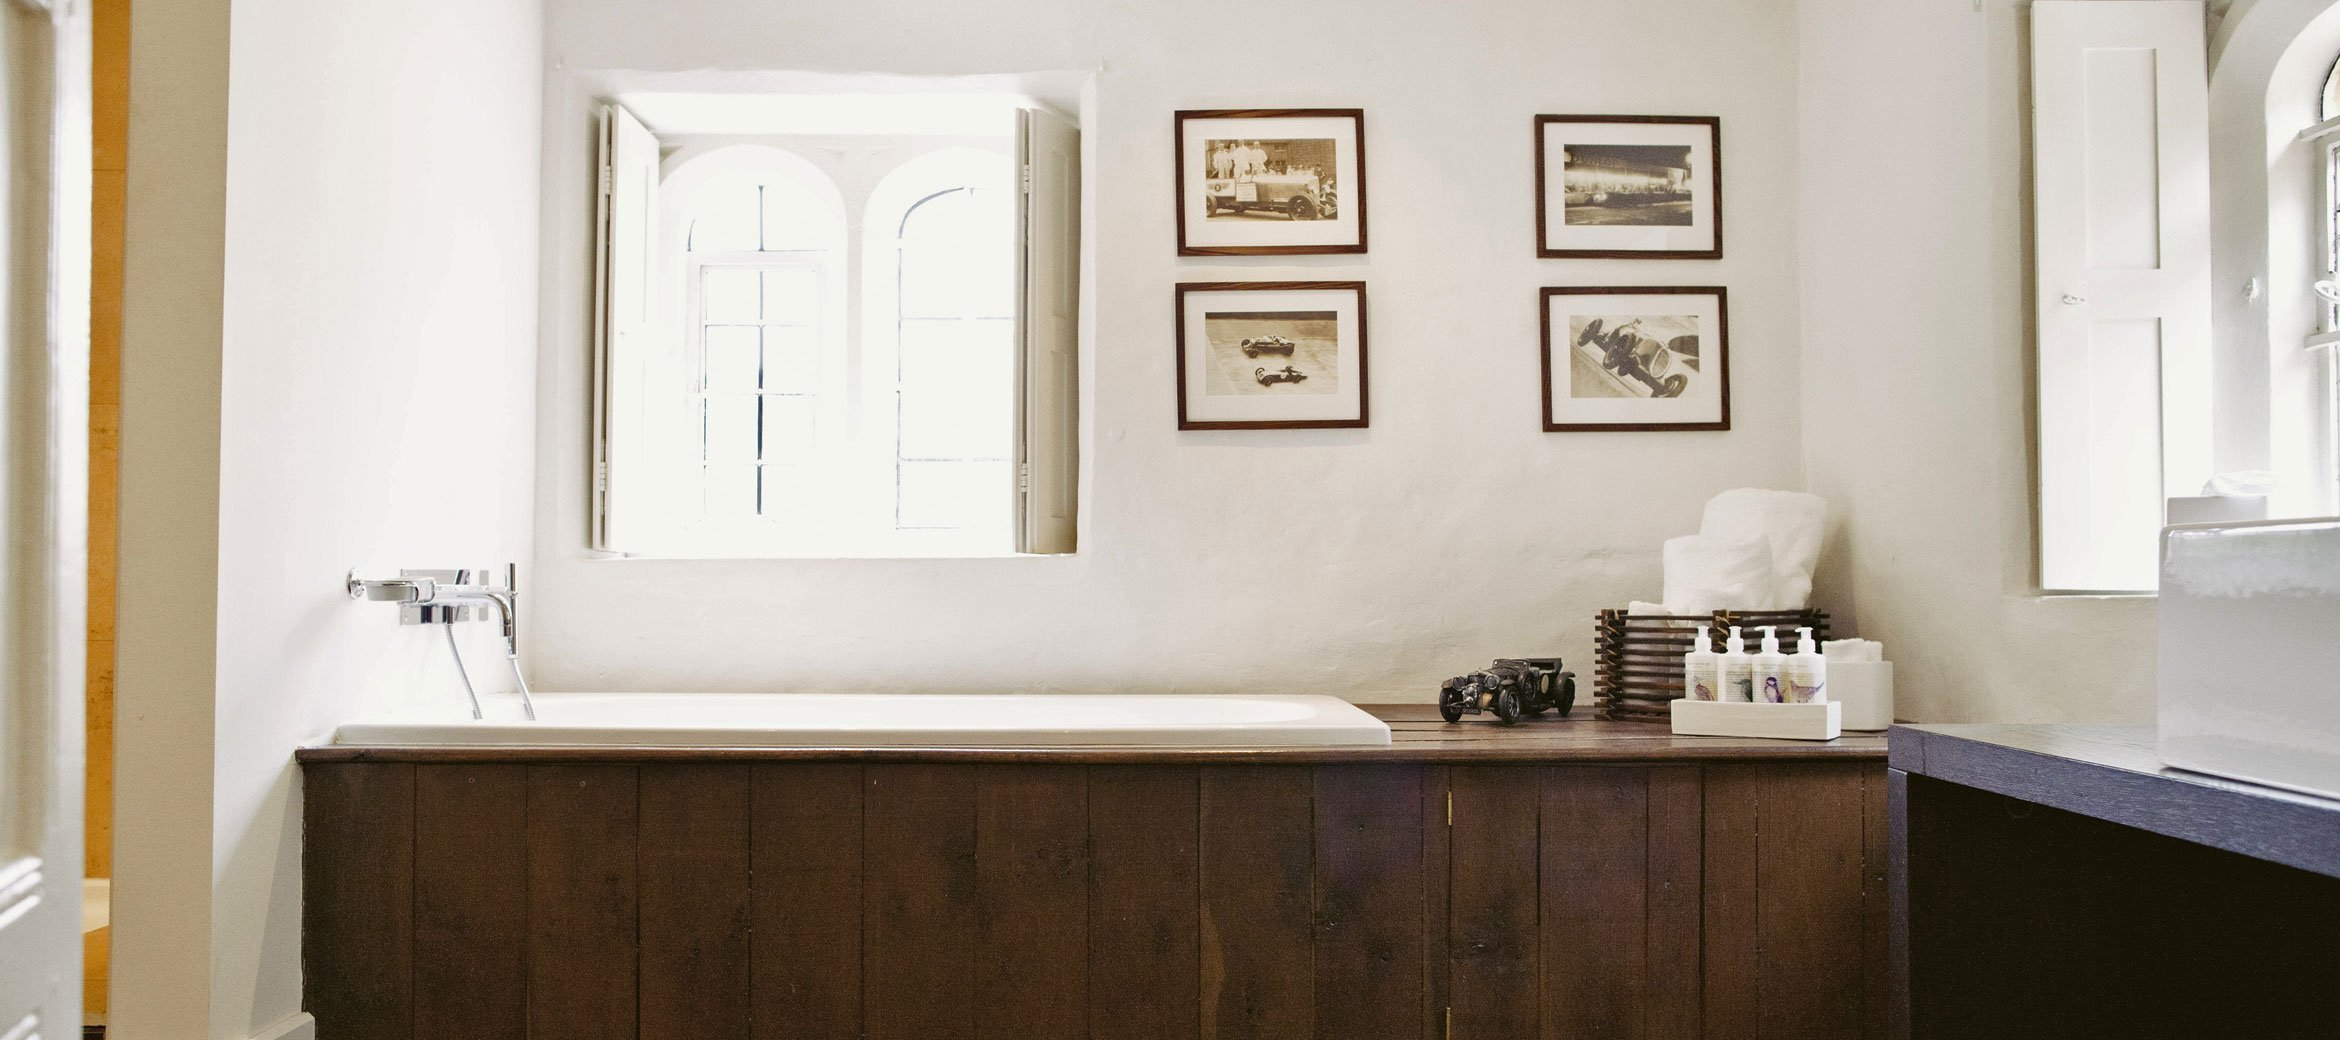 Temple-Guiting-Manor-En-suite-Bathroom